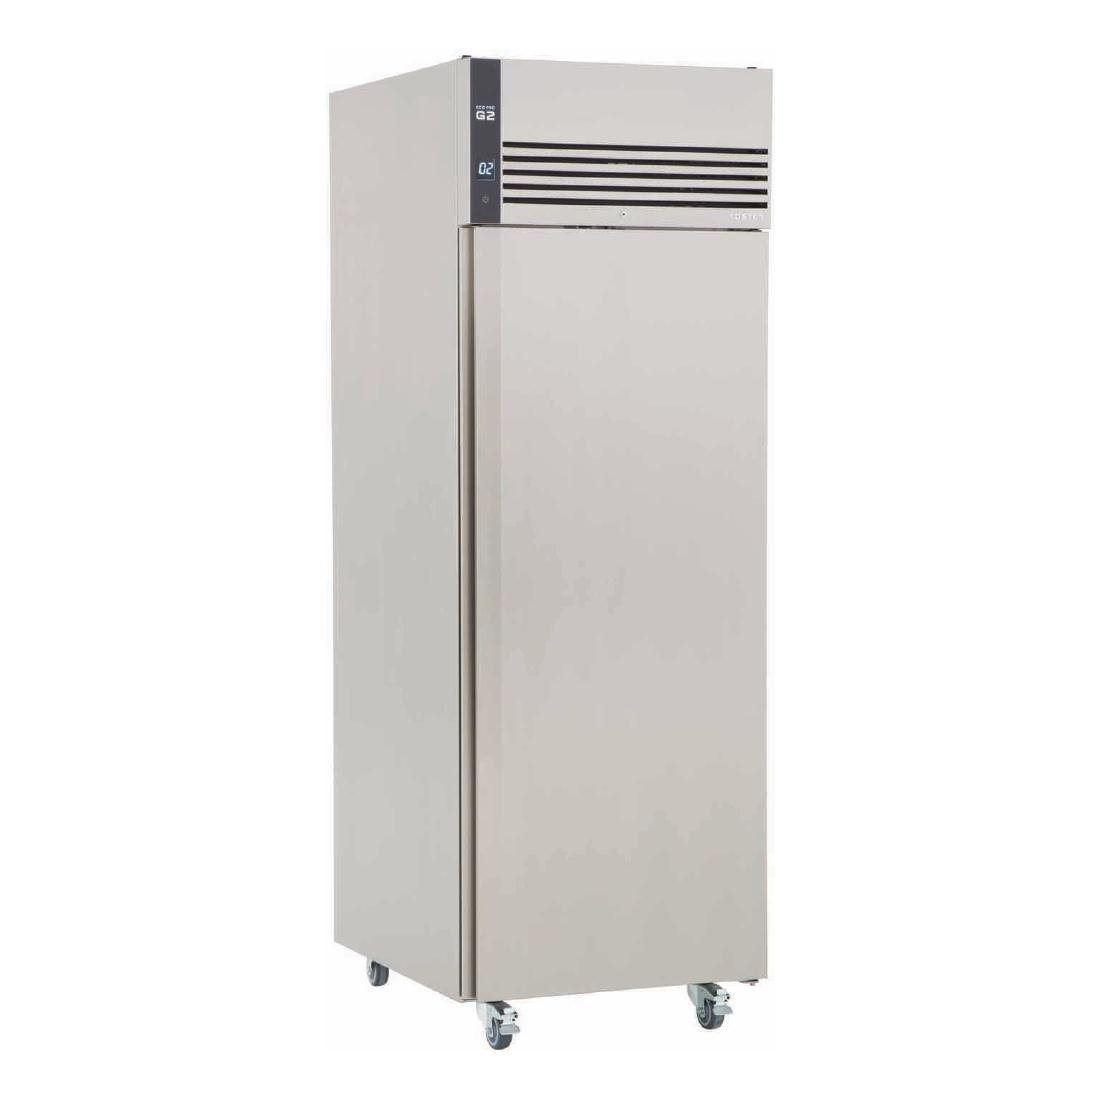 Foster EcoPro G2 1 Door 600Ltr Cabinet Meat Fridge with Back EP700M 10/124